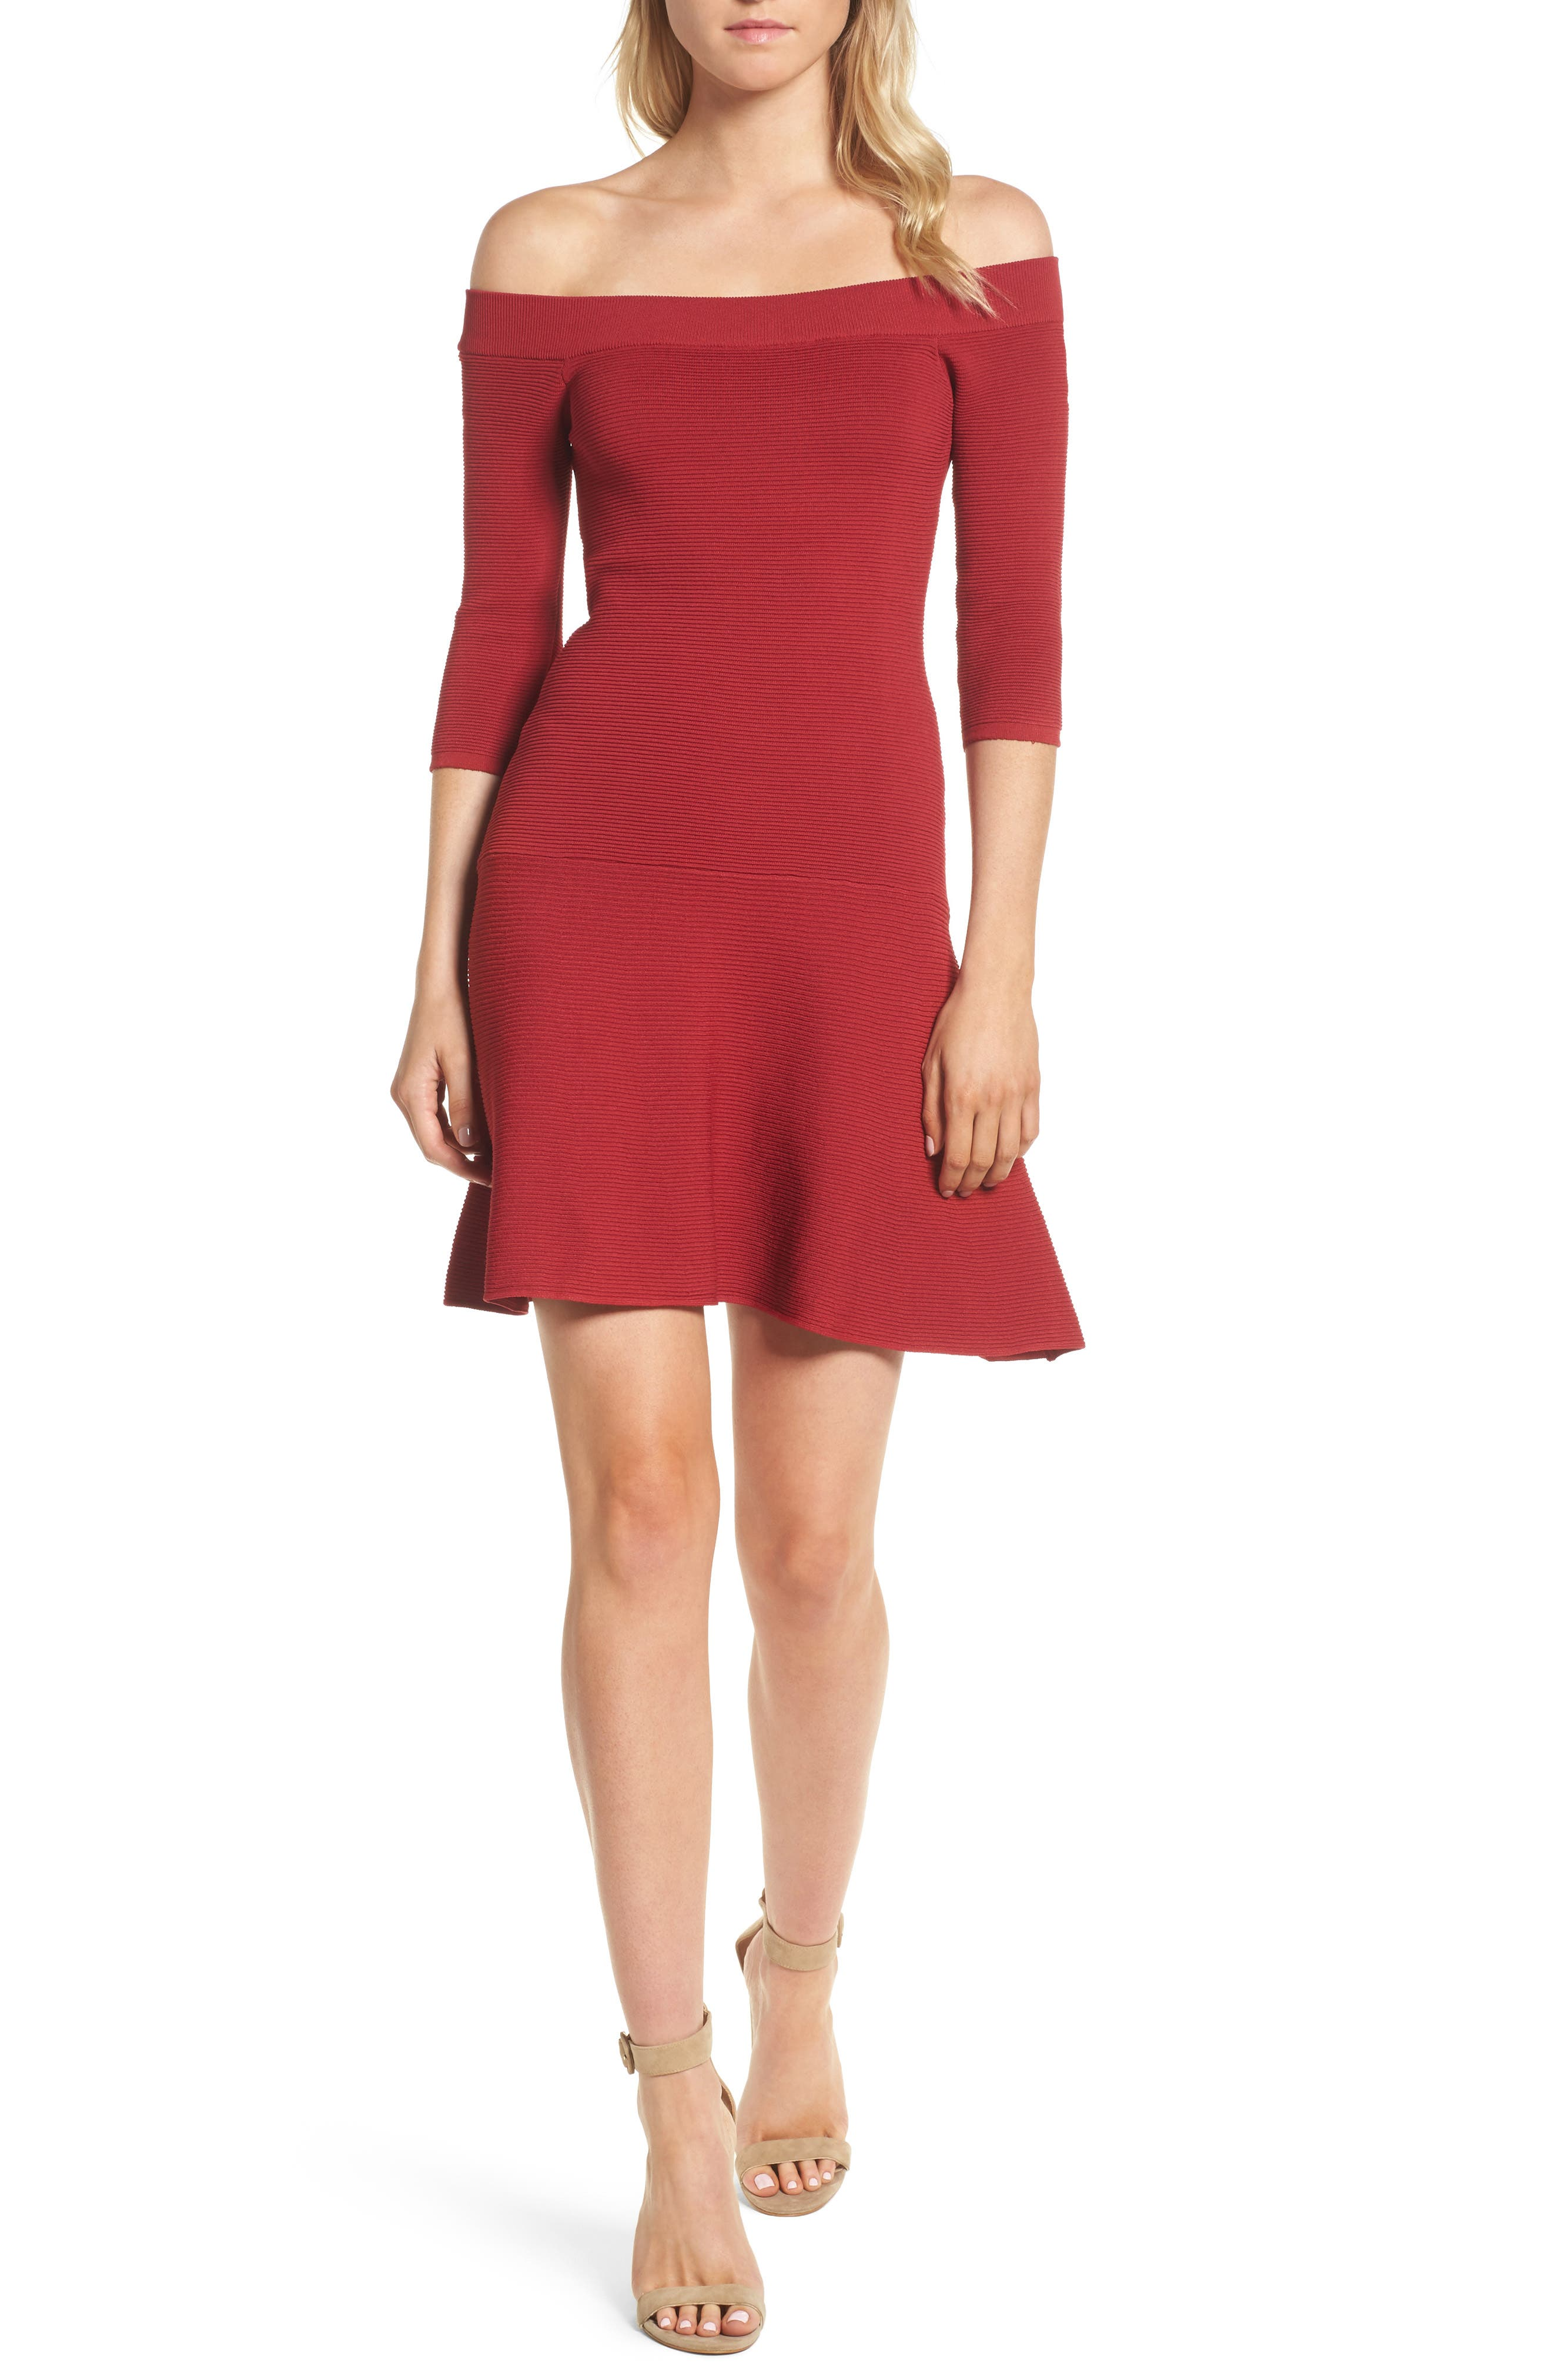 cupcakes and cashmere Whitley Off the Shoulder Dress